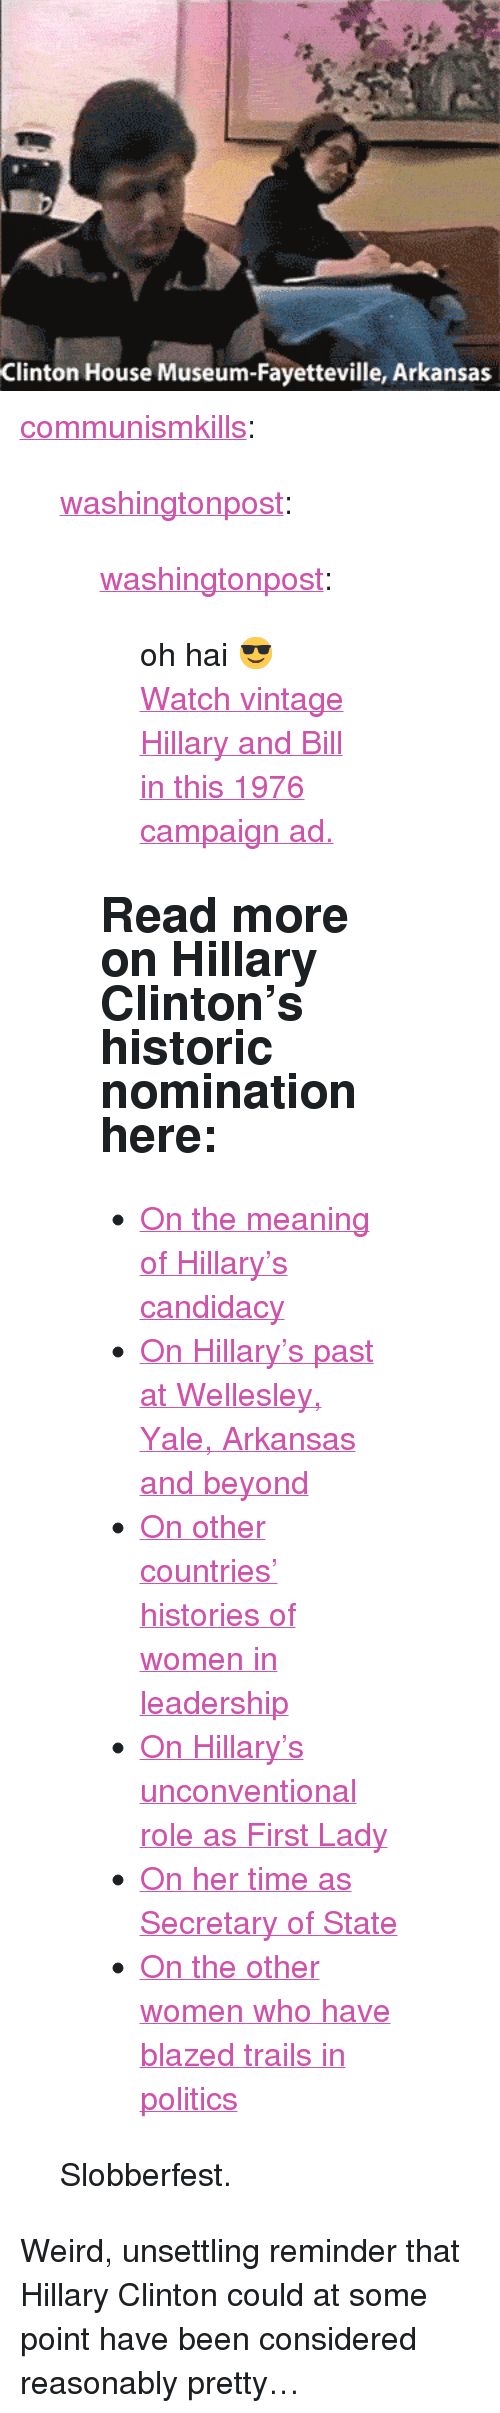 """Hillary Clinton 2016: Clinton House Museum-Fayetteville, Arkansas <p><a href=""""http://communismkills.tumblr.com/post/148064531868/washingtonpost-washingtonpost-oh-hai"""" class=""""tumblr_blog"""">communismkills</a>:</p><blockquote> <p><a class=""""tumblr_blog"""" href=""""http://washingtonpost.tumblr.com/post/148064368032"""">washingtonpost</a>:</p> <blockquote> <p><a class=""""tumblr_blog"""" href=""""http://washingtonpost.tumblr.com/post/133597363857"""">washingtonpost</a>:</p> <blockquote> <p>oh hai😎</p> <p><a href=""""https://www.washingtonpost.com/video/politics/watch-vintage-hillary-and-bill-in-this-1976-campaign-ad/2015/11/19/6ba78086-8d58-11e5-934c-a369c80822c2_video.html"""">Watch vintage Hillary and Bill in this 1976 campaign ad.</a><br/></p> </blockquote> <h2>Read more on Hillary Clinton's historic nomination here: </h2> <ul><li> <a href=""""https://www.washingtonpost.com/politics/the-meaning-of-hillary-the-presumptive-2016-democratic-presidential-nominee/2016/06/06/1b99bb5c-2b2a-11e6-9b37-42985f6a265c_story.html"""">On the meaning of Hillary's candidacy</a><br/></li> <li><a href=""""https://www.washingtonpost.com/politics/the-rising-lawyers-detour-to-arkansas/2016/07/22/93f8d302-503d-11e6-a7d8-13d06b37f256_story.html?tid=sm_tw"""">On Hillary's past at Wellesley, Yale, Arkansas and beyond</a></li> <li><a href=""""https://www.washingtonpost.com/news/the-fix/wp/2016/07/26/women-have-led-more-than-60-countries-but-hillary-clintons-rise-is-rarer-than-it-might-seem/?tid=sm_tw"""">On other countries' histories of women in leadership</a></li> <li><a href=""""https://www.washingtonpost.com/politics/the-double-life-of-hillary-clinton/2016/07/06/bcc17496-43a5-11e6-88d0-6adee48be8bc_story.html"""">On Hillary's unconventional role as First Lady </a></li> <li><a href=""""https://www.washingtonpost.com/politics/hillary-clinton-remains-popular-for-her-time-as-secretary-of-state-viewed-apart-from-obama/2014/06/07/4bad6e62-ea61-11e3-b98c-72cef4a00499_story.html"""">On her time as Secretary of State</a></li> <li><a href=""""https://www.washing"""